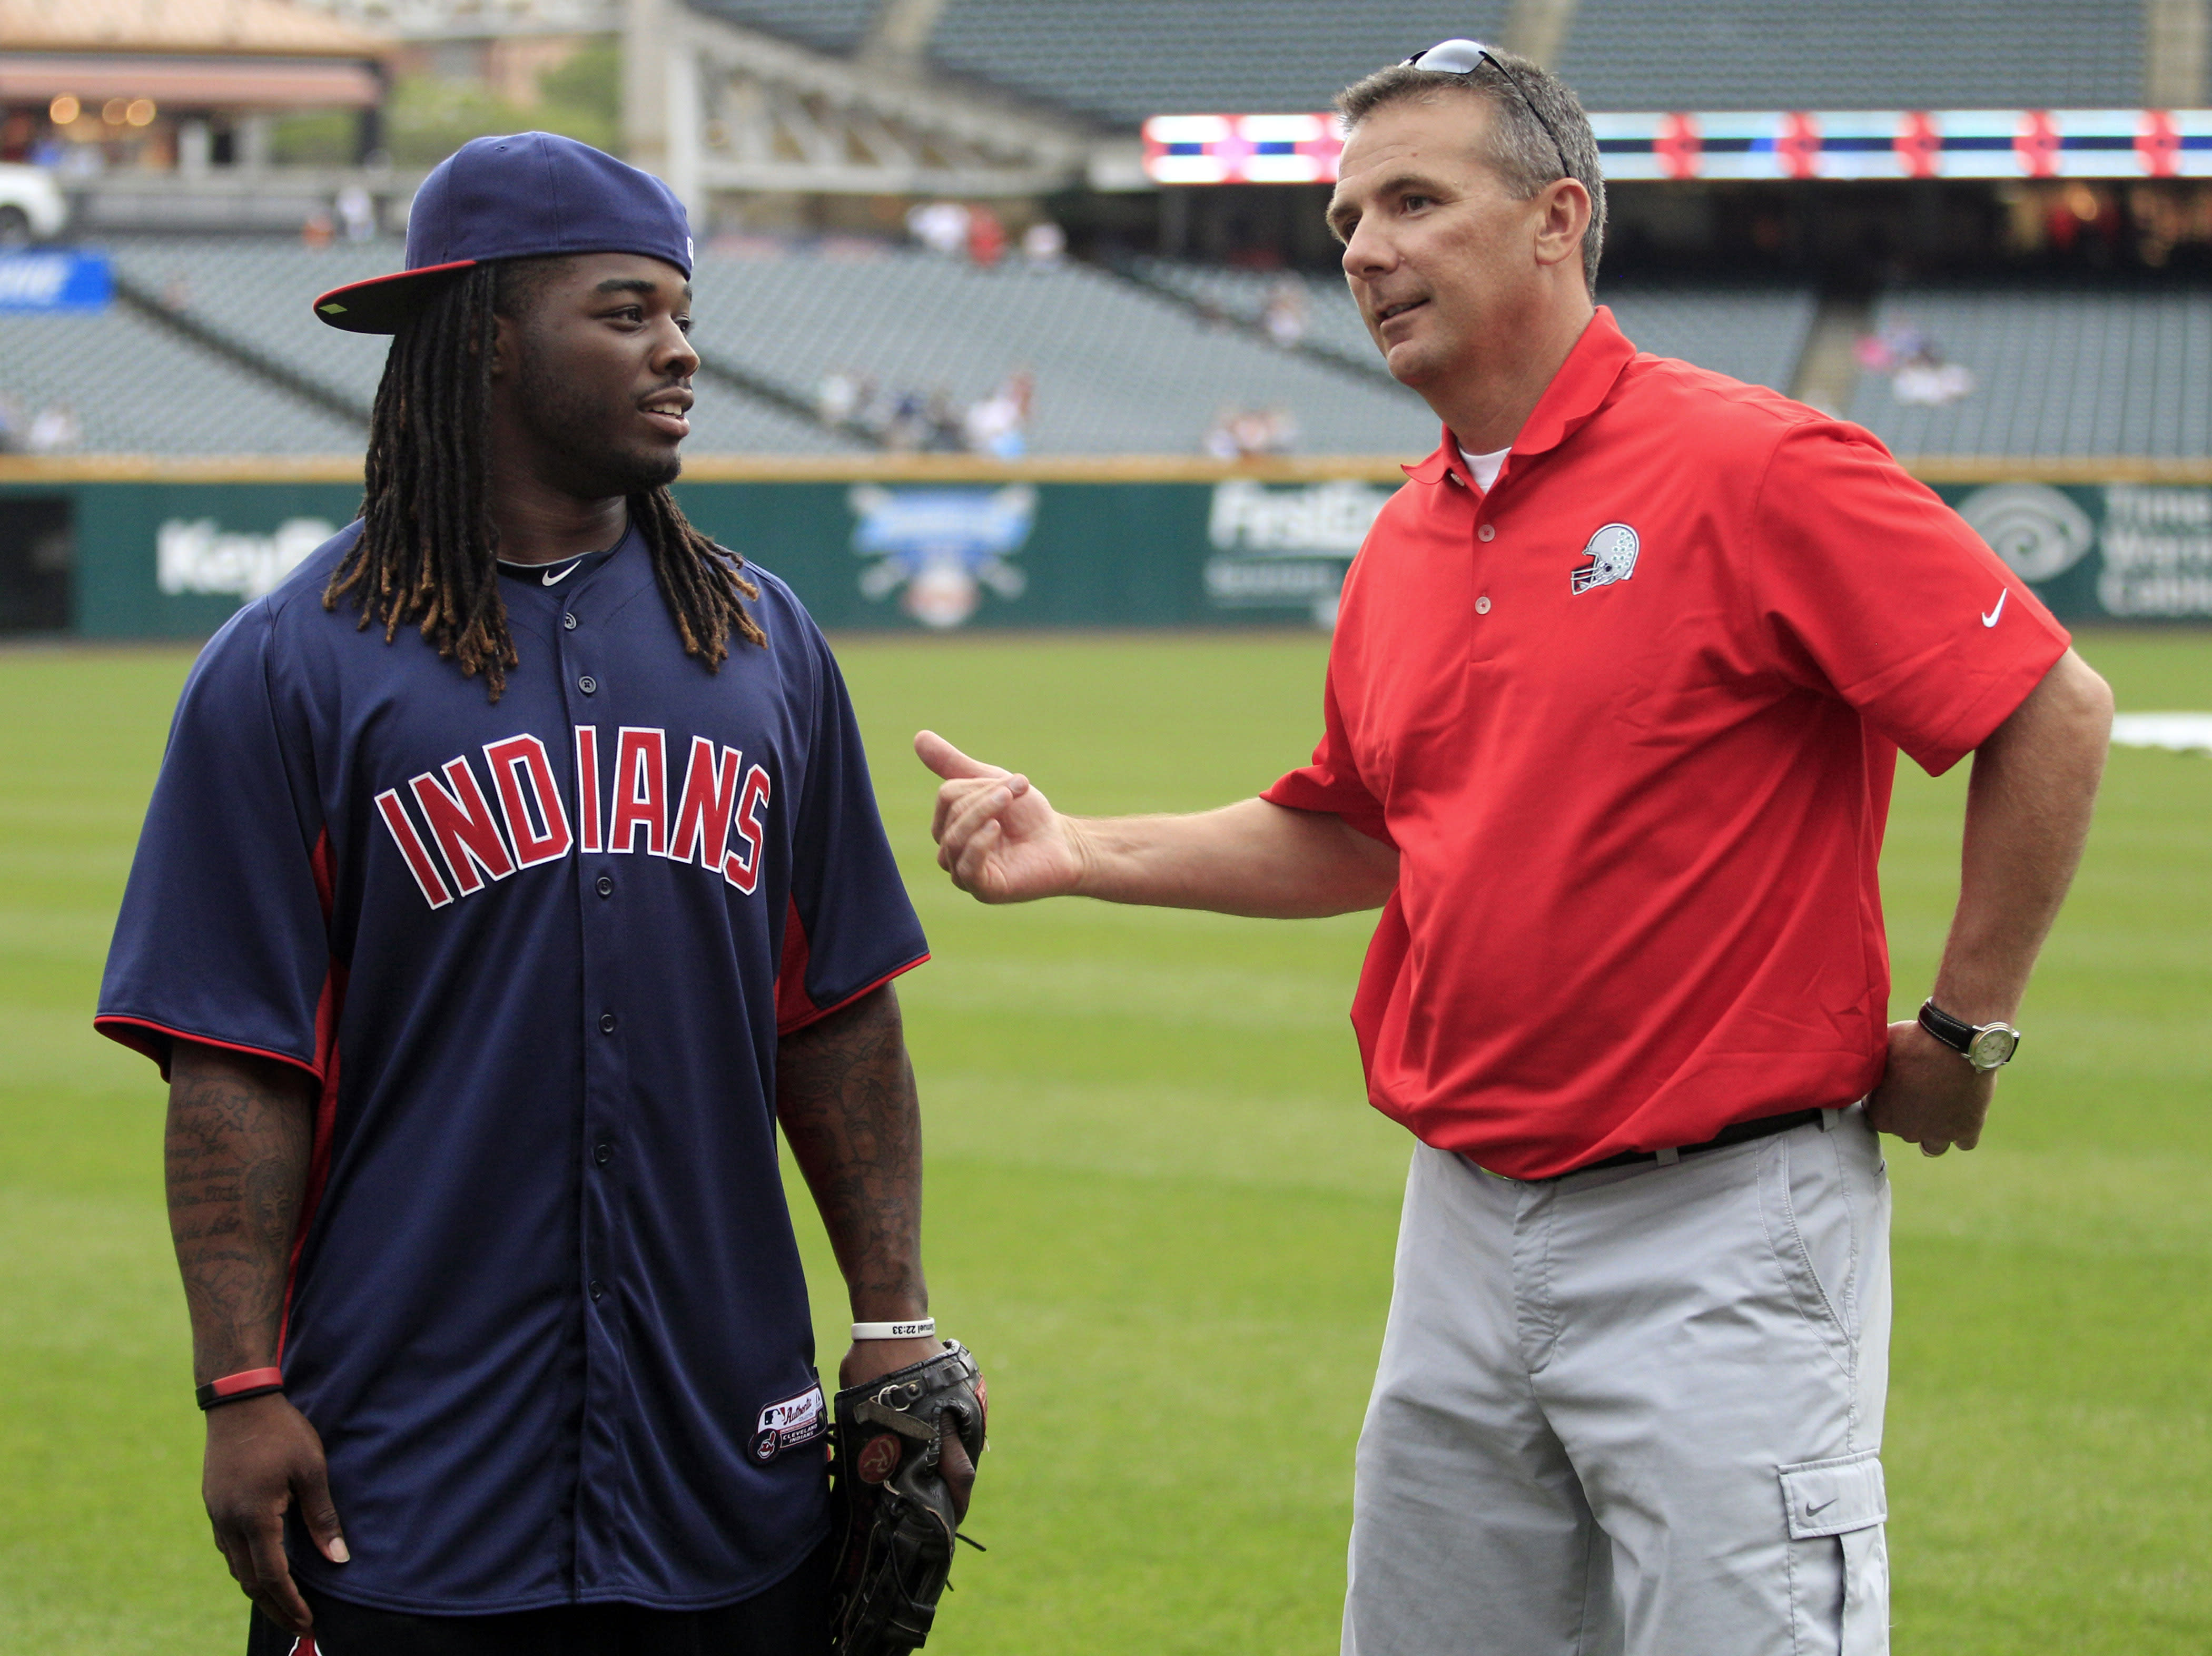 Cleveland Browns running back Trent Richardson, left, talks with Ohio State football coach Urban Meyer before the Cleveland Indians play the Cincinnati Reds in a baseball game, Monday, June 18, 2012, in Cleveland. (AP Photo/Tony Dejak)